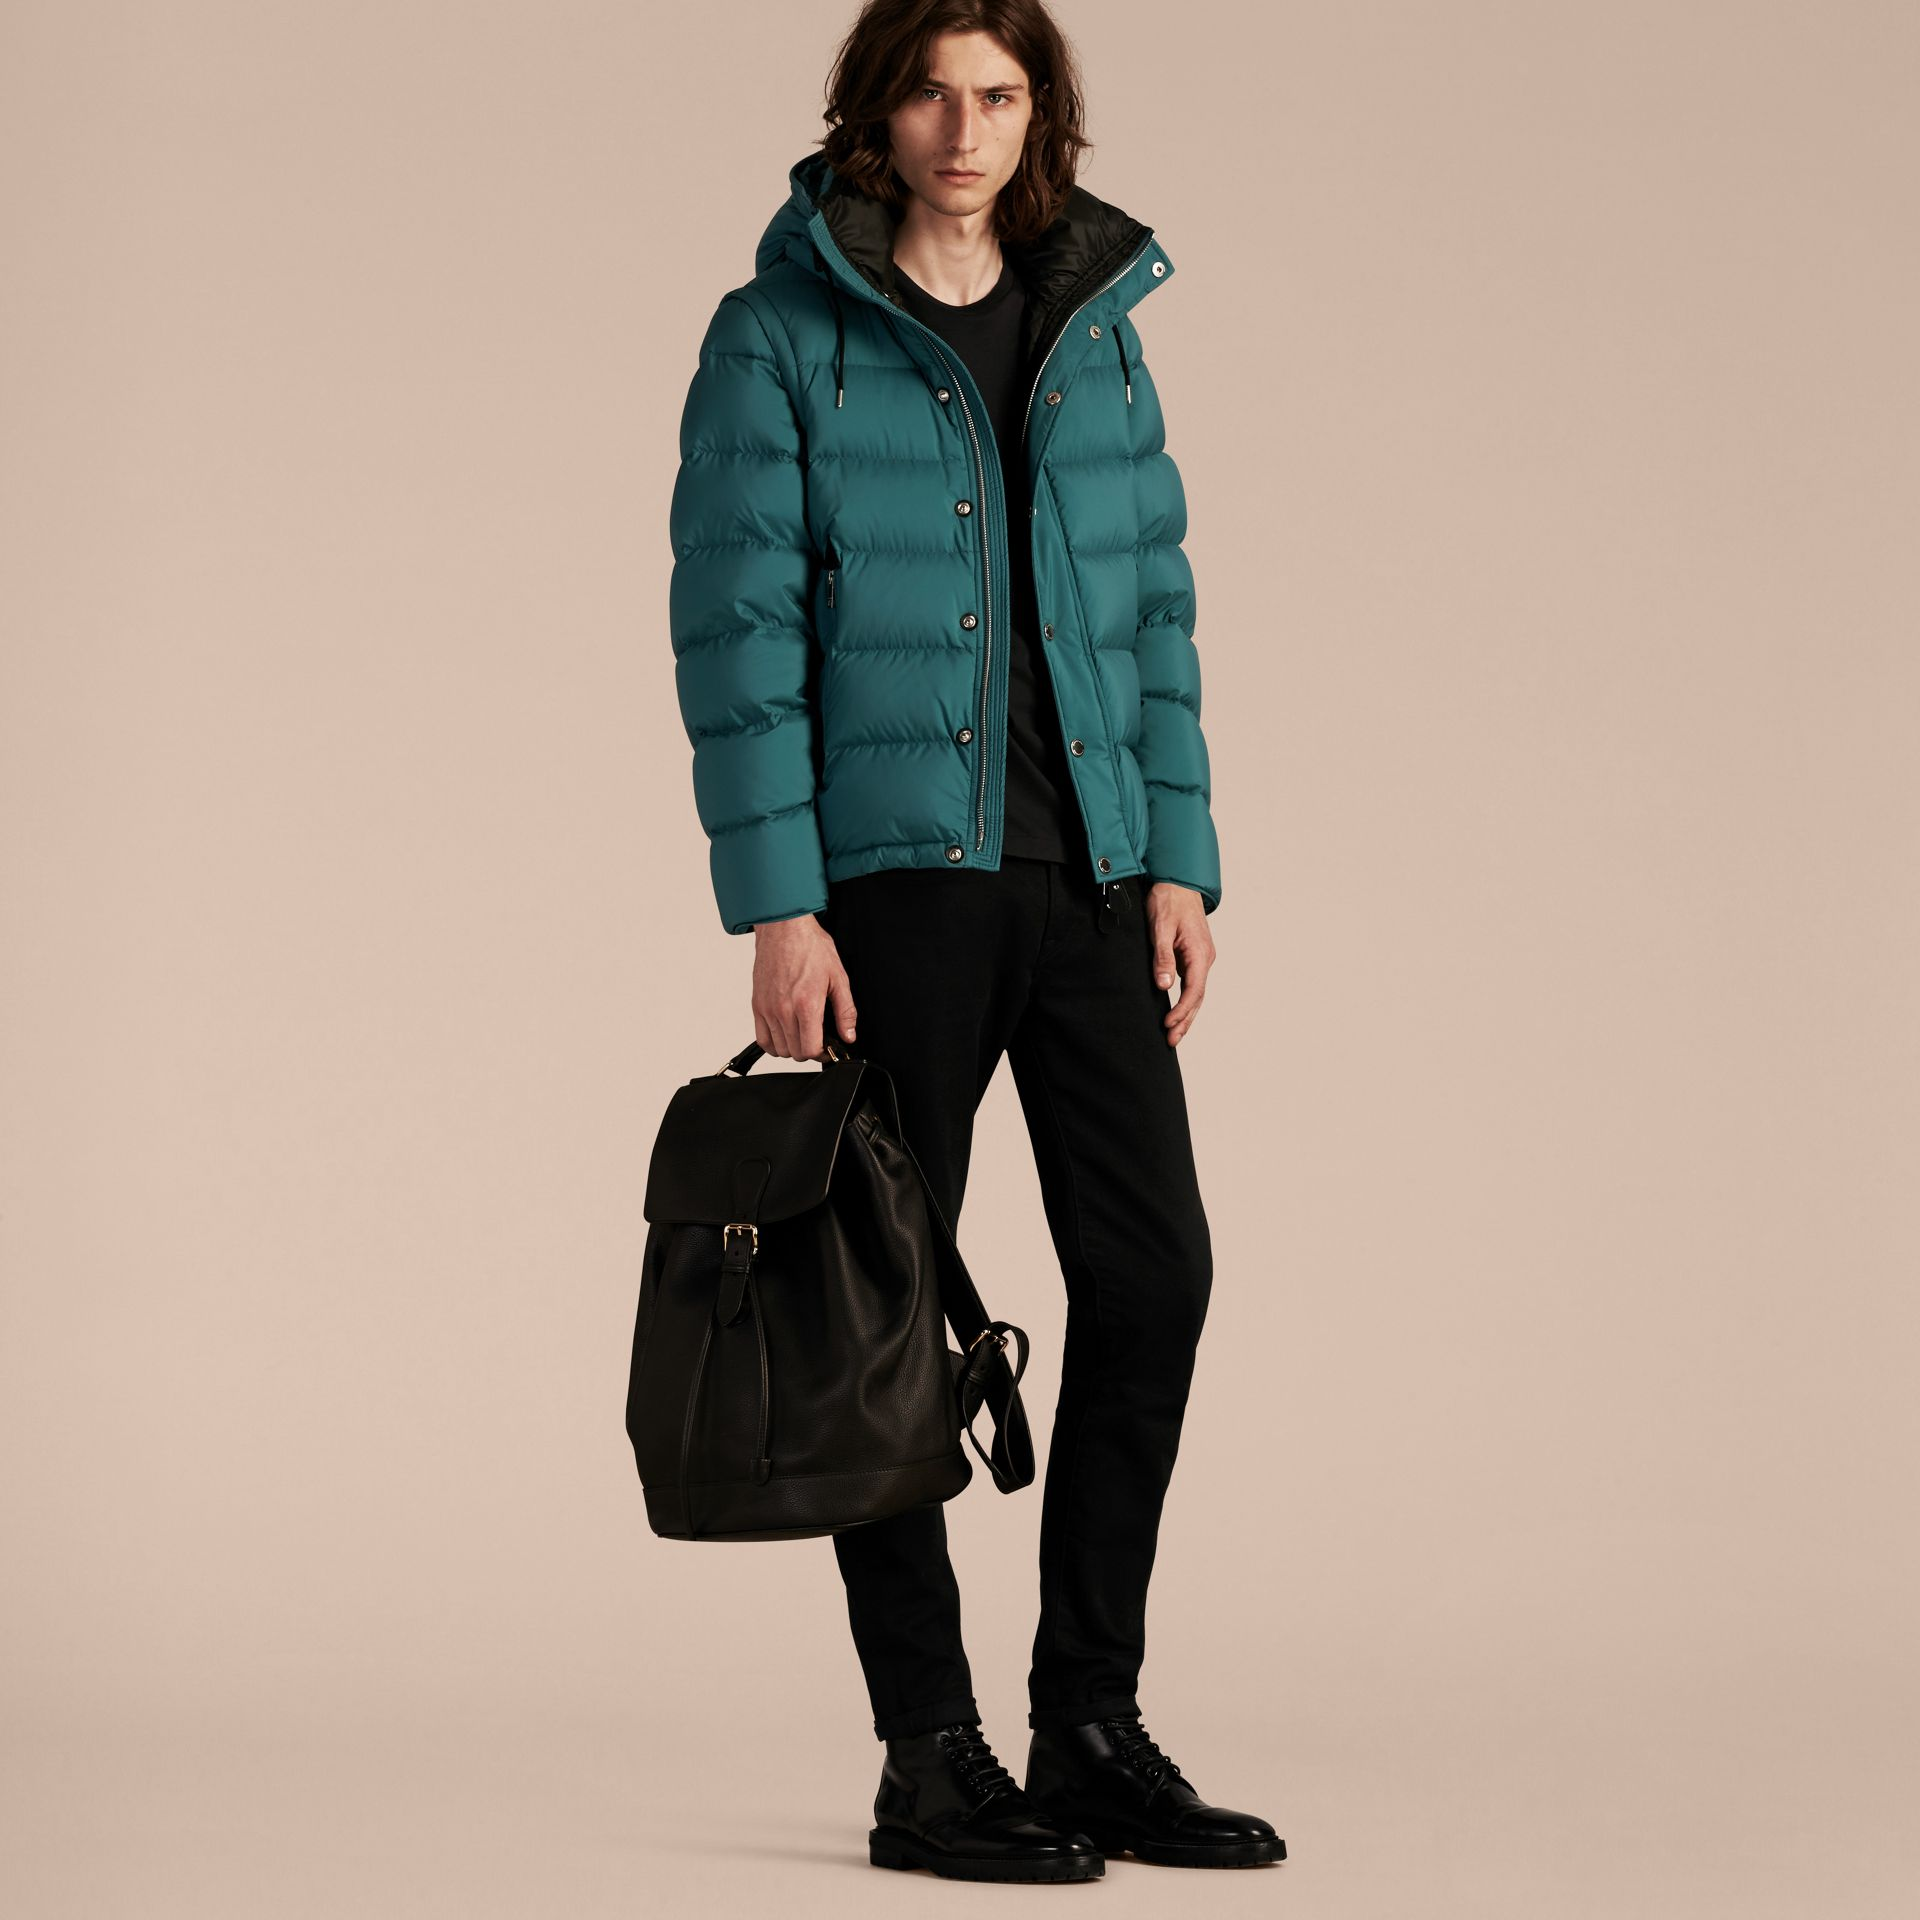 Down-filled Hooded Jacket with Detachable Sleeves in Dusty Teal - gallery image 7